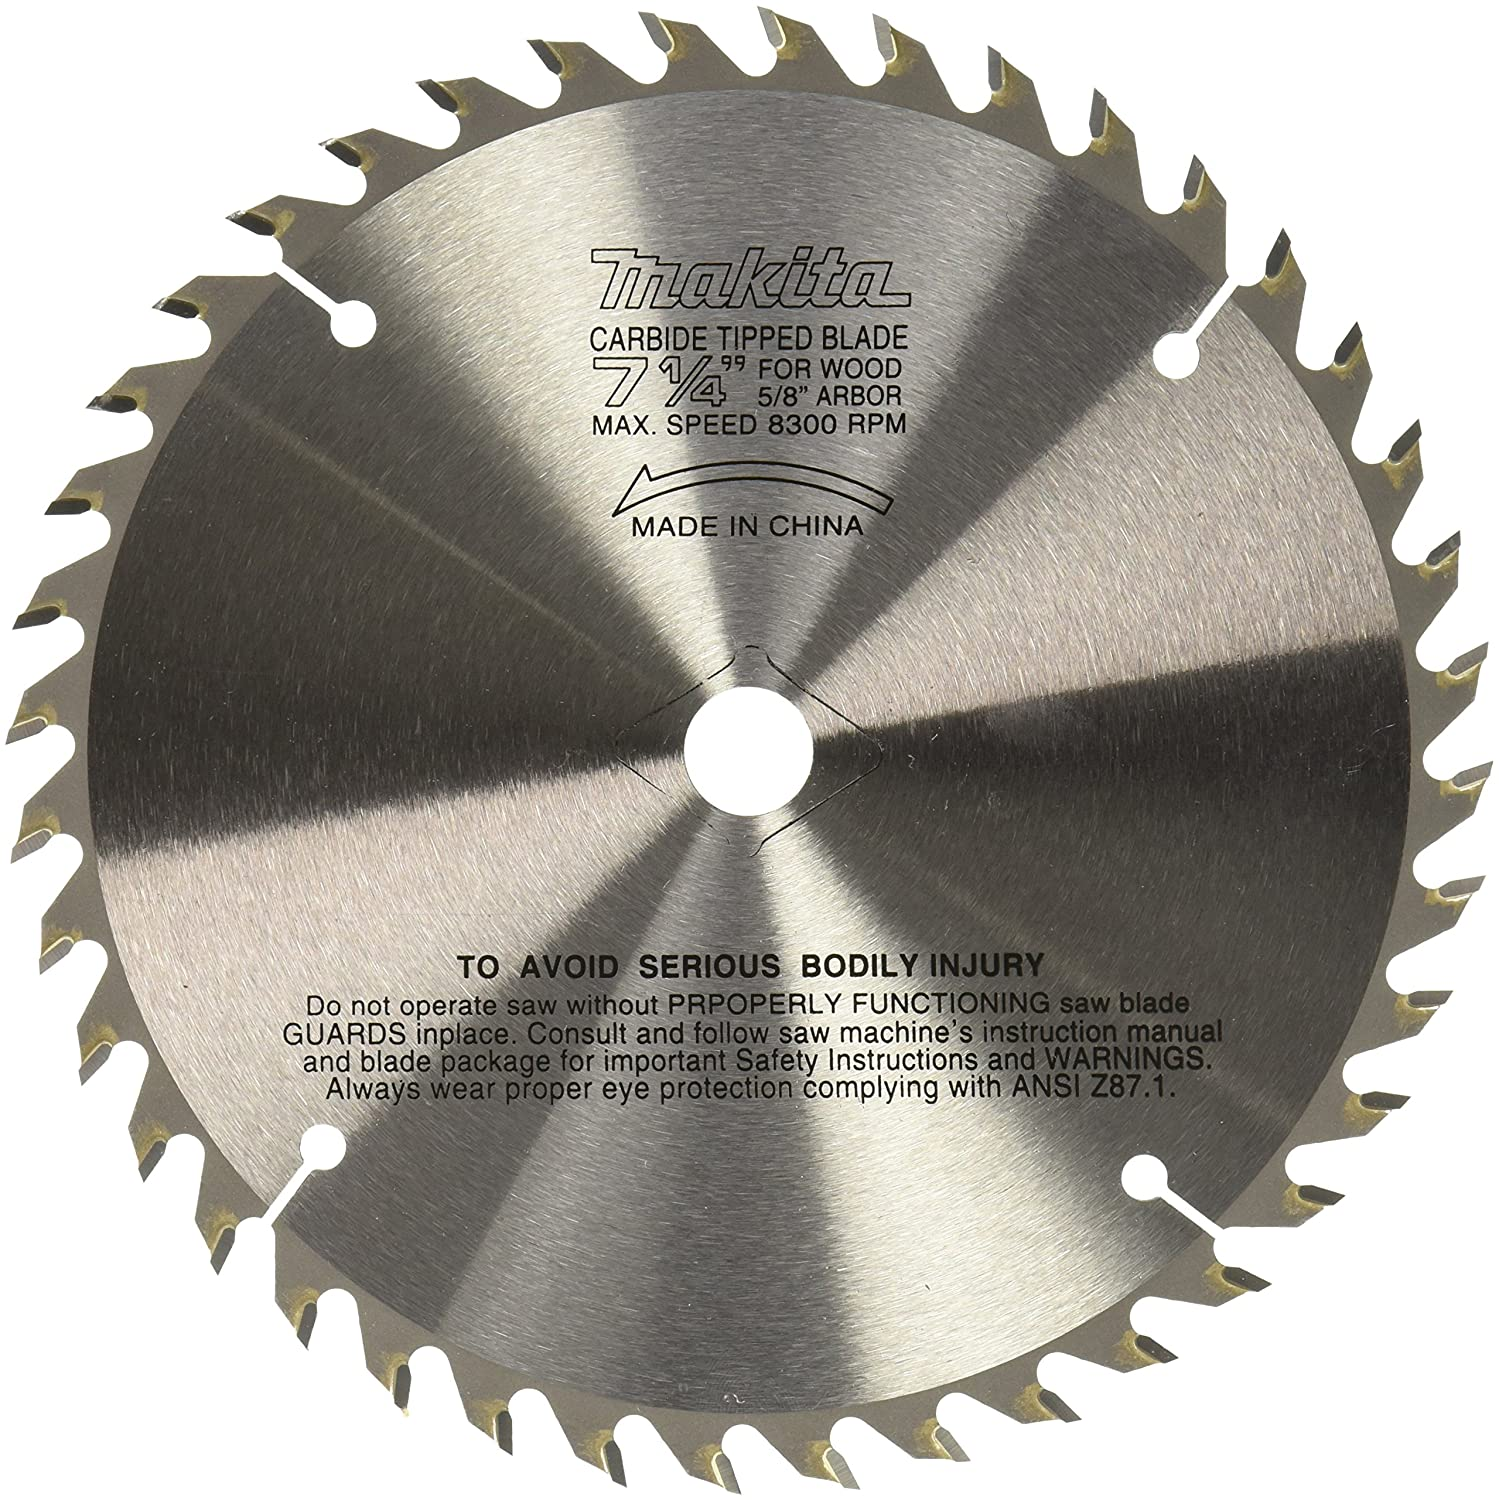 Makita 721251 a 7 14 inch 40t carbide blade circular saw blades makita 721251 a 7 14 inch 40t carbide blade circular saw blades amazon greentooth Gallery